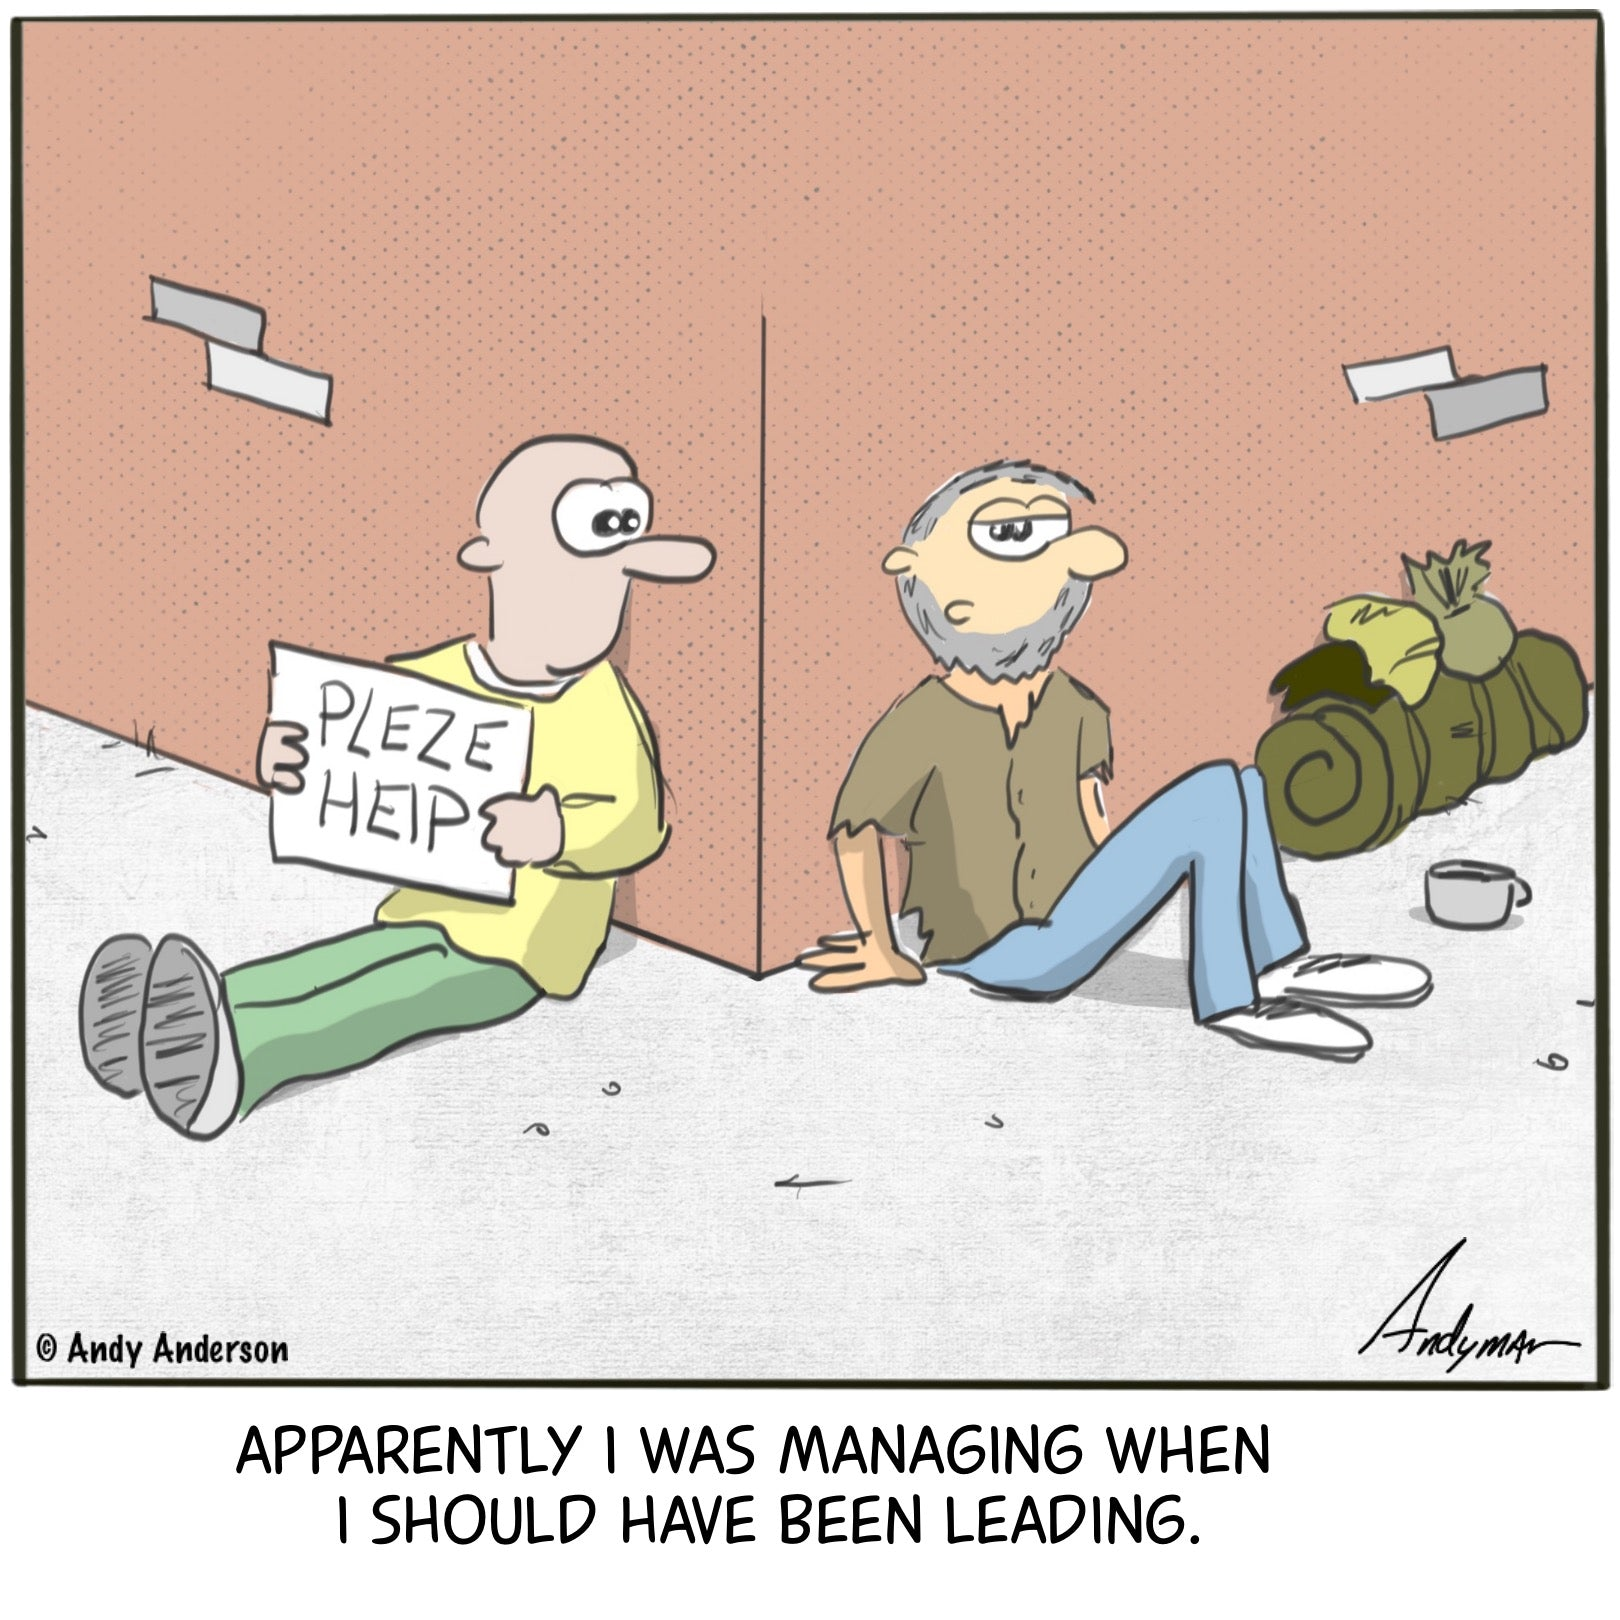 Cartoon about homeless men who should have lead instead of managed